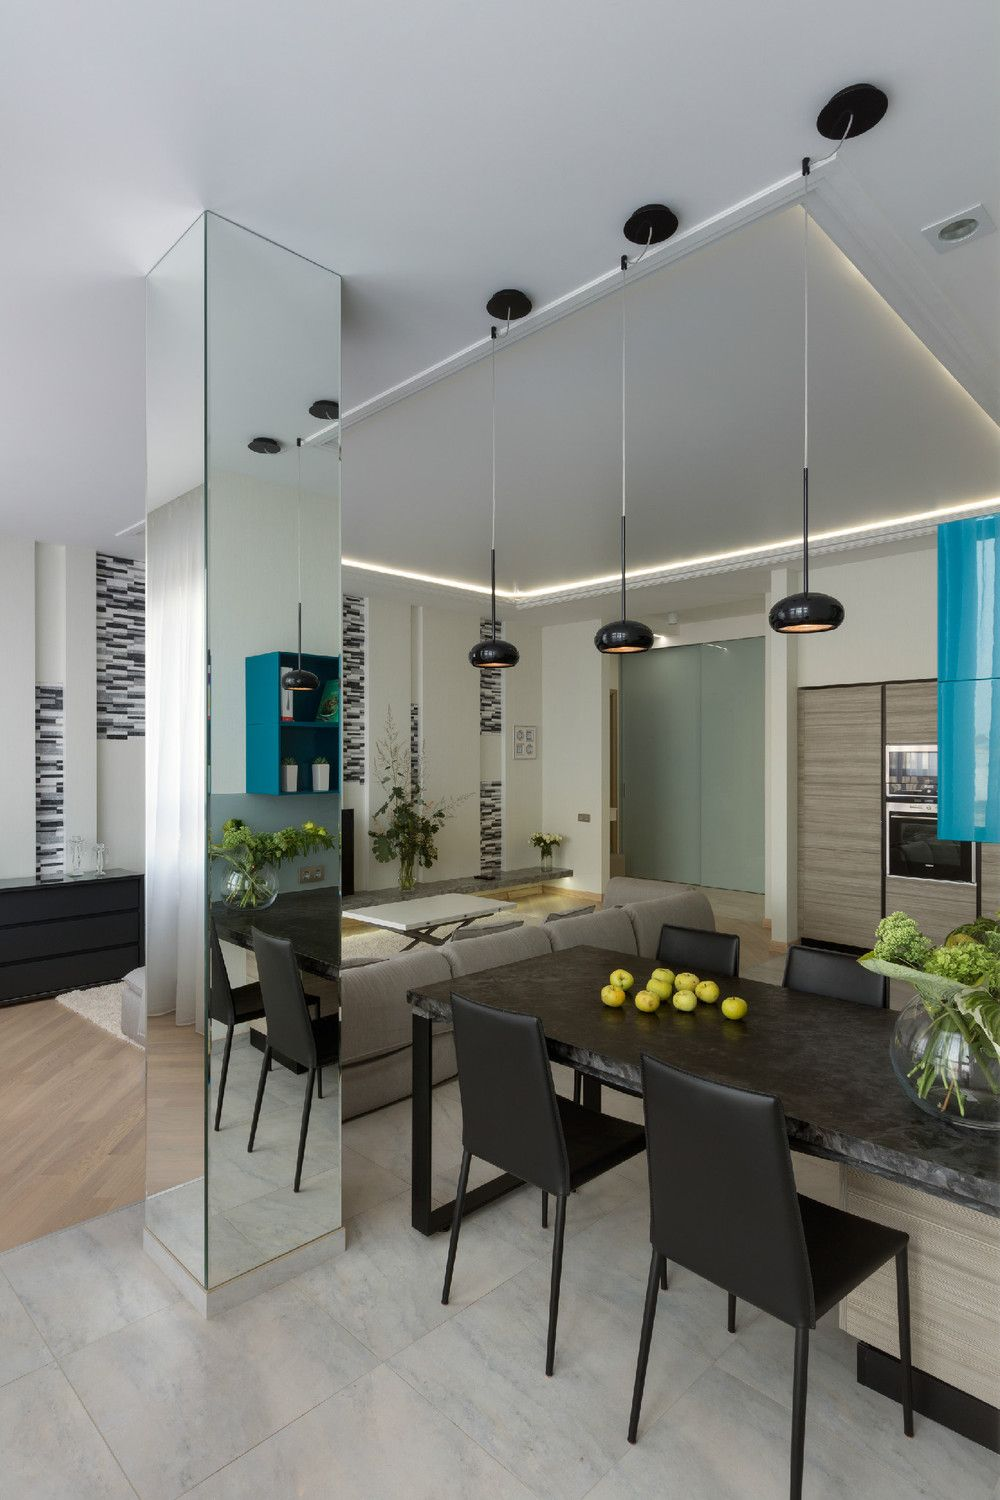 Funky And Family Friendly Apartment Interior Decorating: bespoke ...